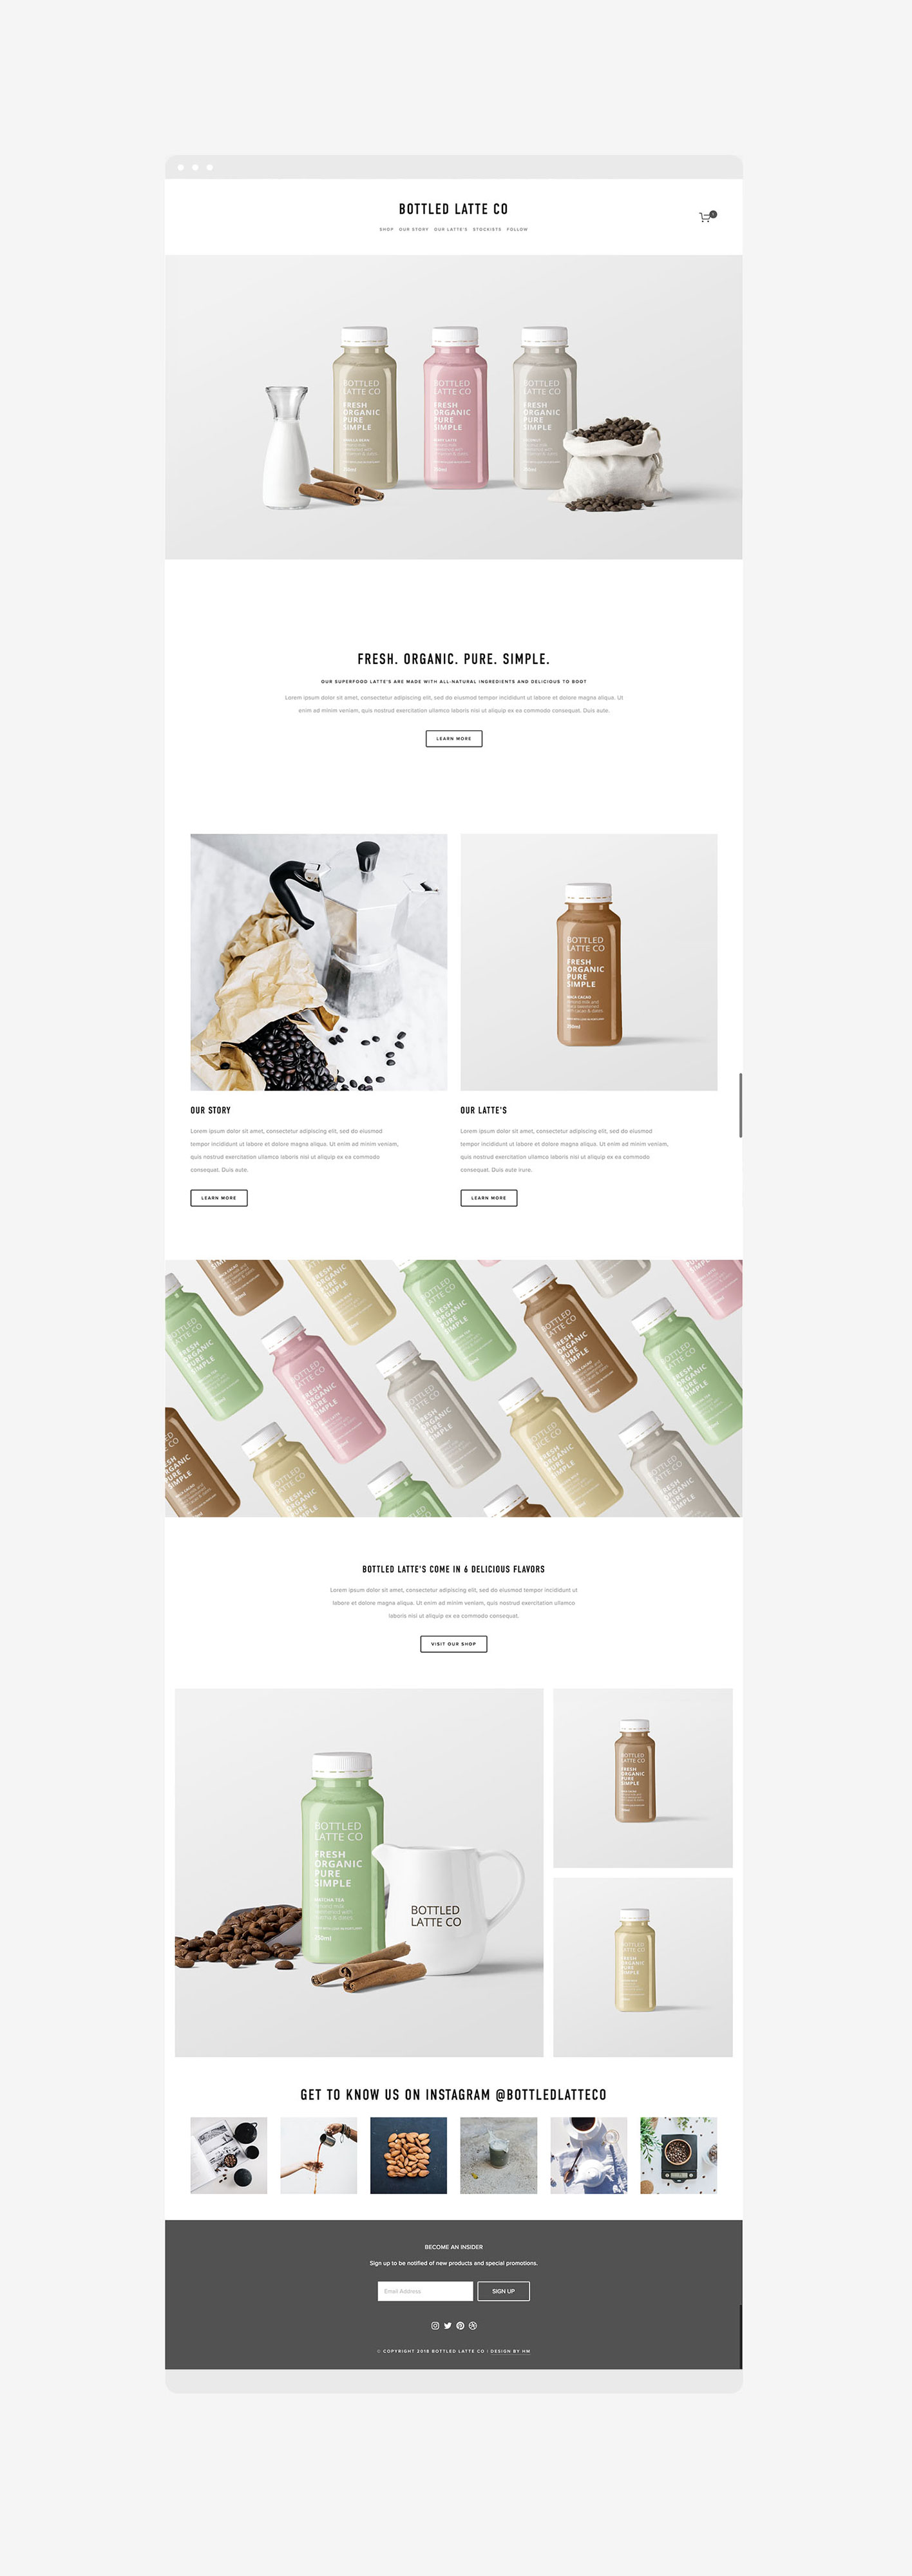 Bottled-Latte-Co-Squarespace-Ecommerce-Website-Design-Shop-Products-Heather-Maehr-Portland-Oregon.jpg